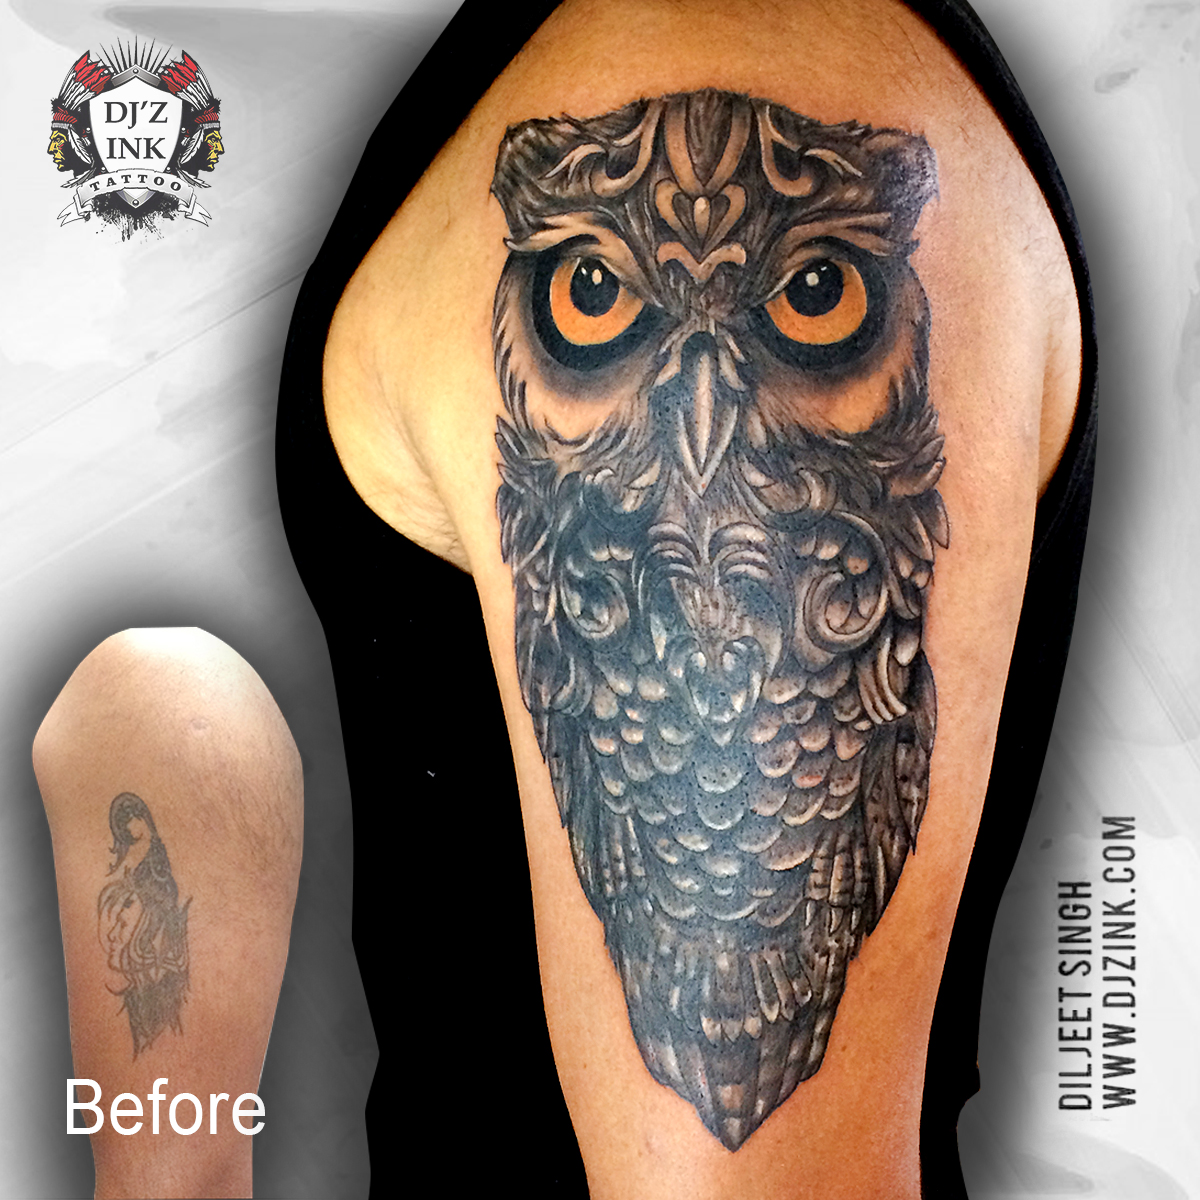 The wise old owl: a representation of wisdom and good judgement. They are amazing skilled hunters, thinkers and planners. Like an owl, be adaptable under pressure and accept change. #owltattoo #owl #owltattoodesign #coveruptattoo #tattoodesigns  #djzinktattoostudiopic.twitter.com/nsZhAUmUYt